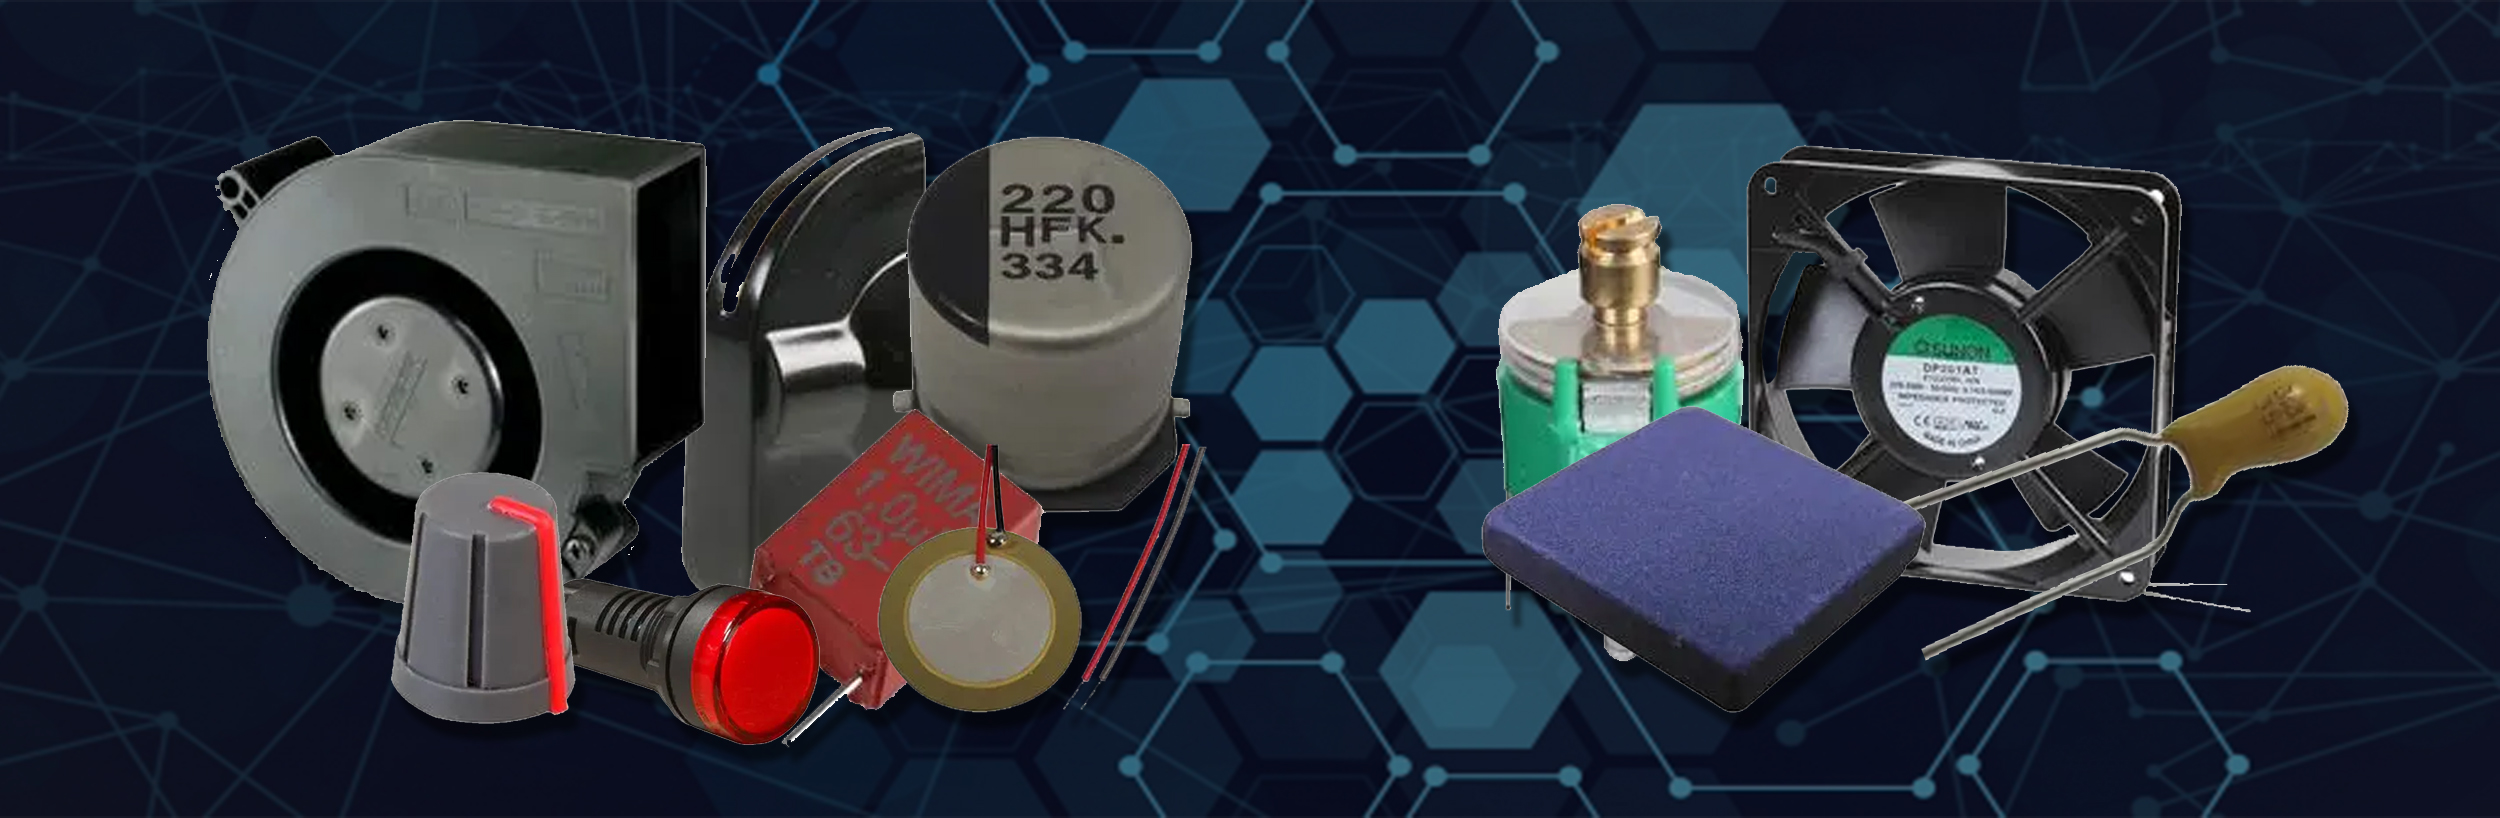 02ELECTRONIC & ELECTRICAL COMPONENTS